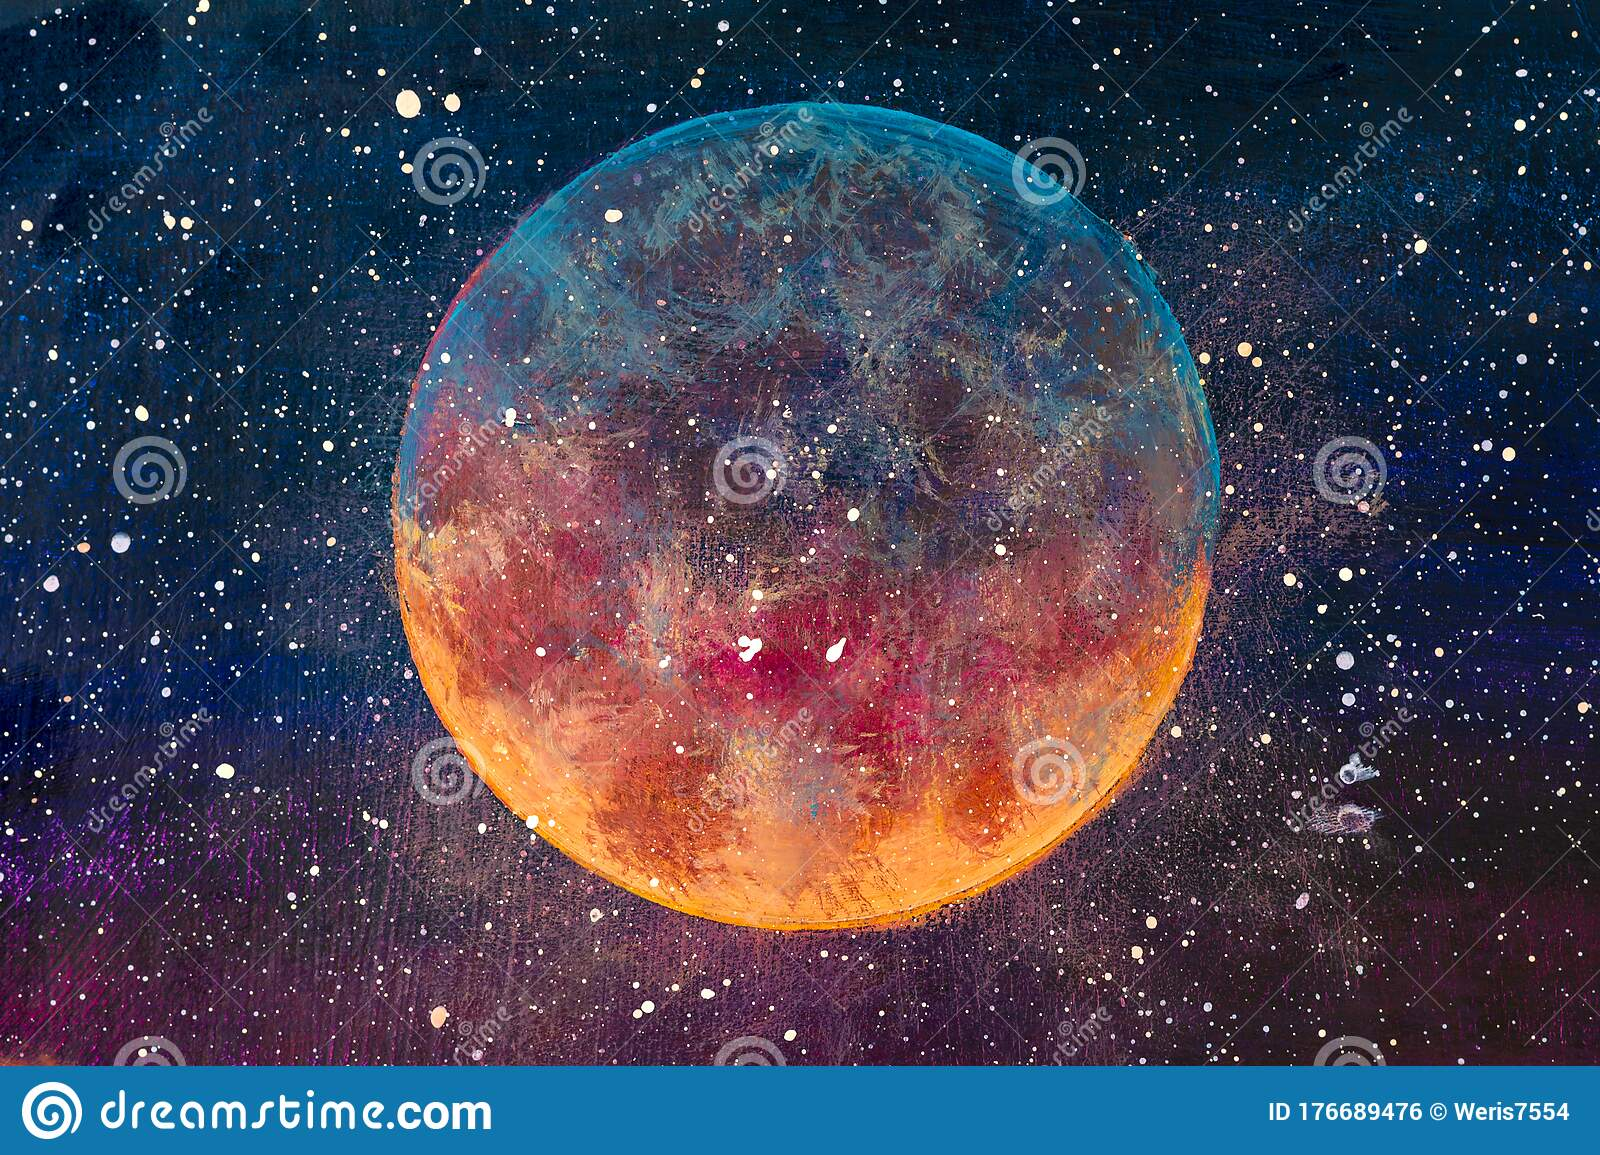 Fantastic Oil Painting Beautiful Big Planet Moon Among Stars In Universe Stock Photo Image Of Beautiful Fine 176689476